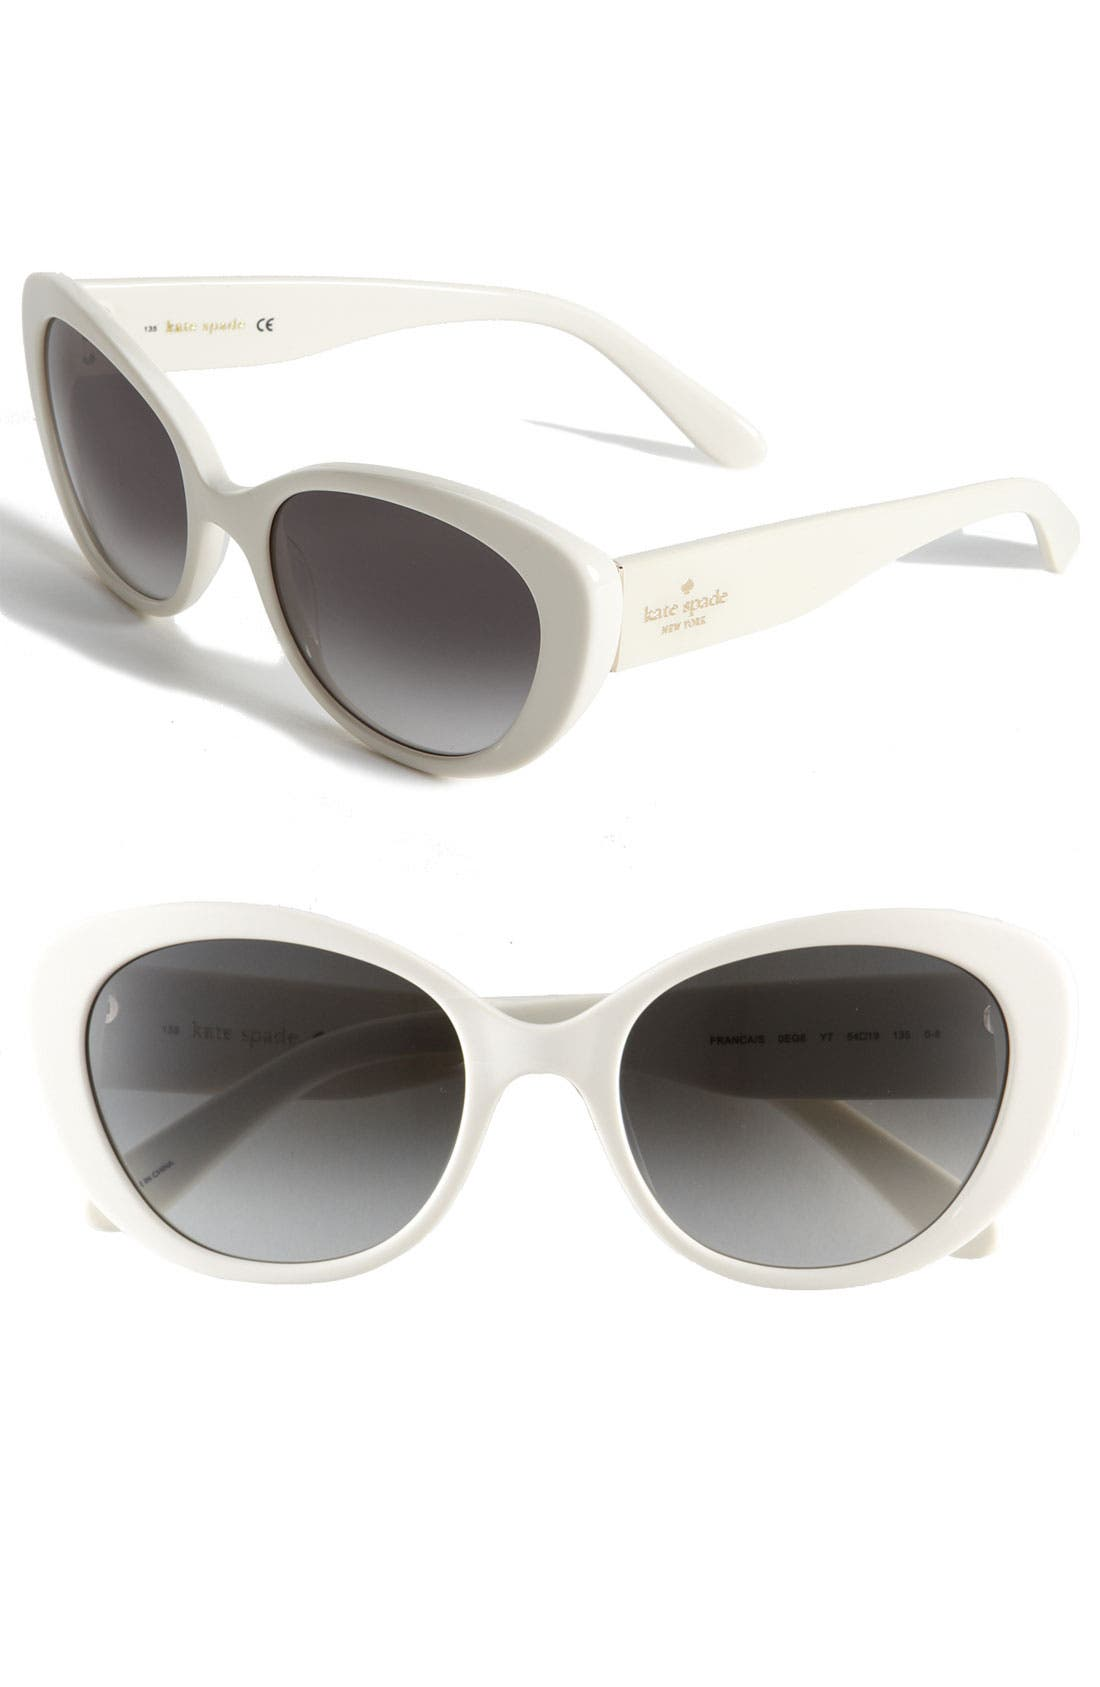 Alternate Image 1 Selected - kate spade new york 'franca' 54mm cat's eye sunglasses